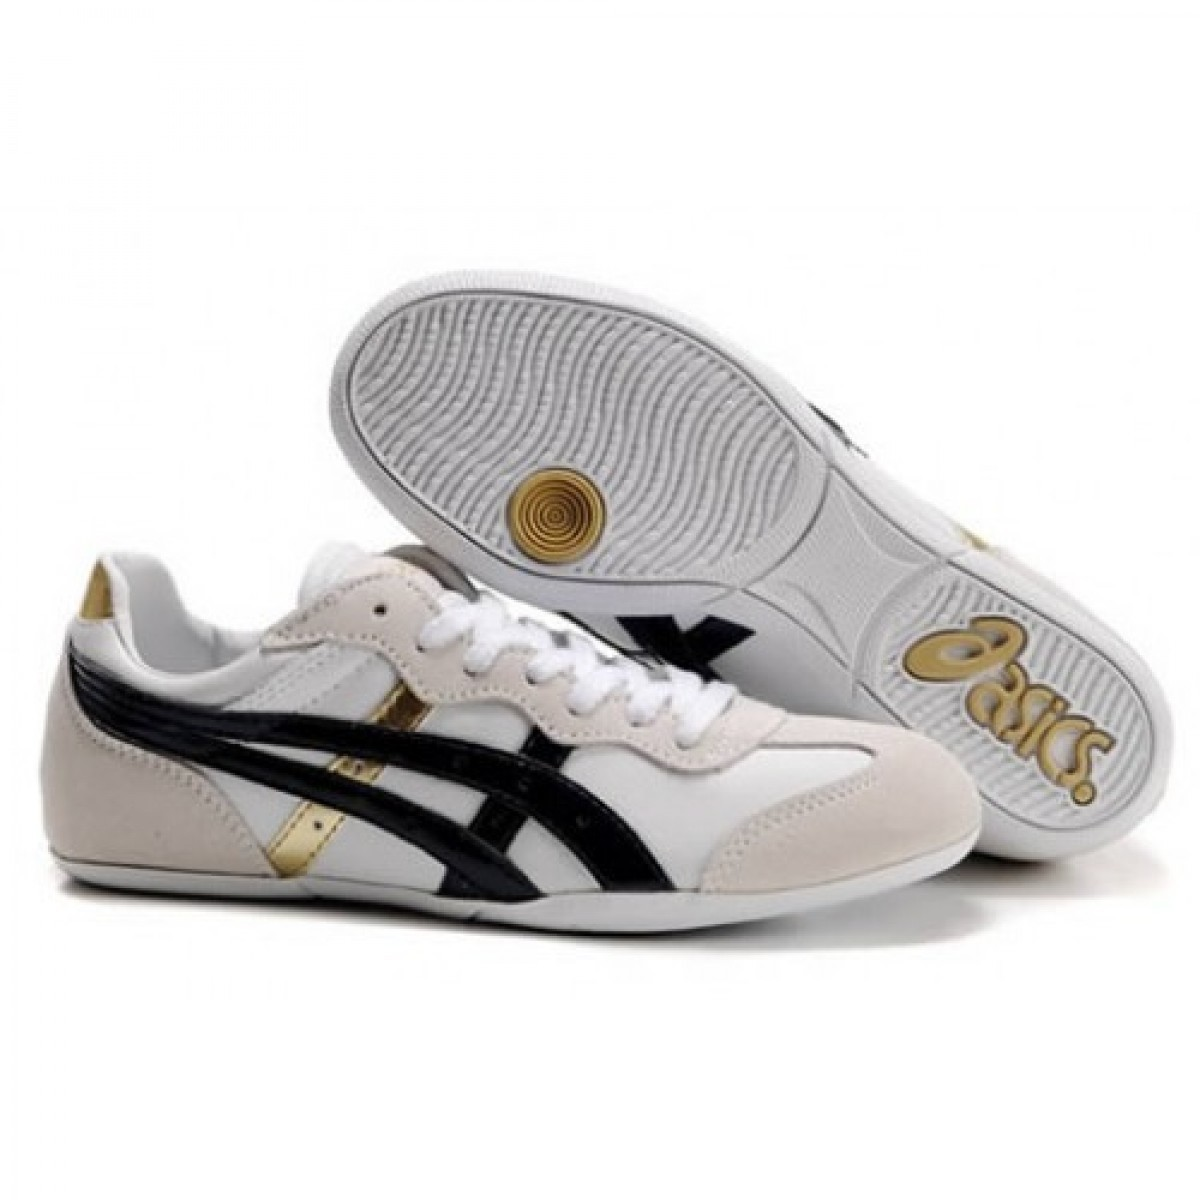 asics chaussures blanche